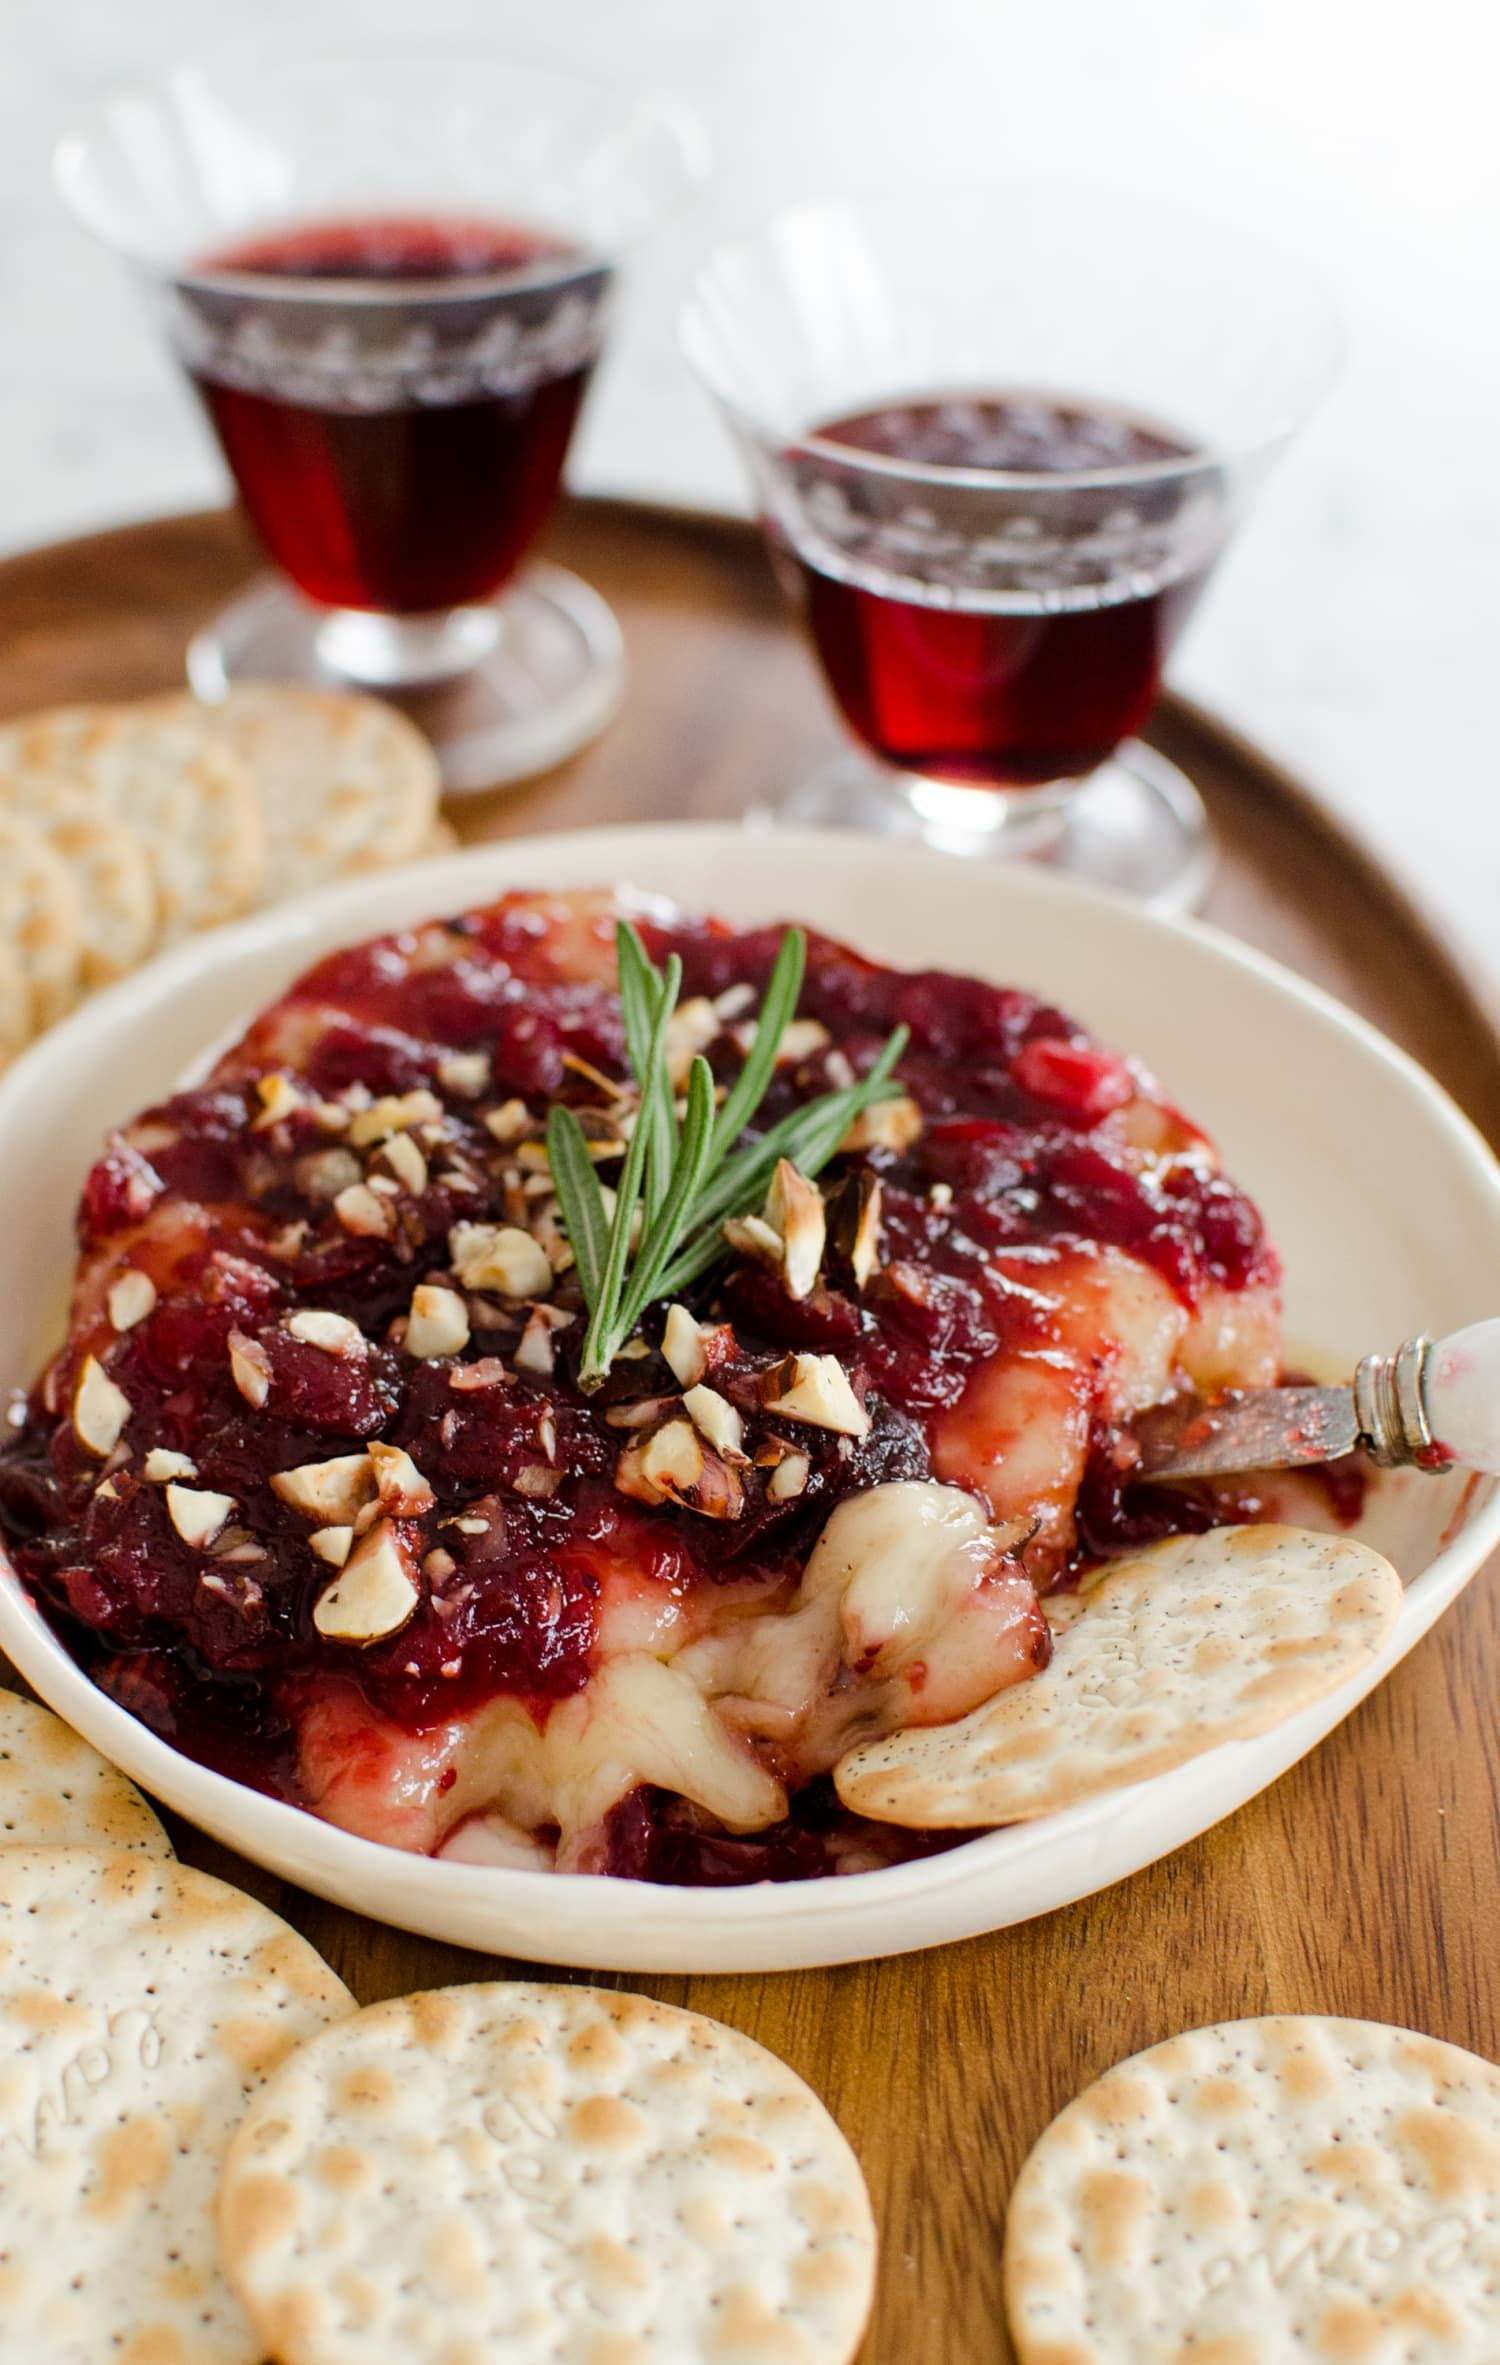 Photo of Holiday Appetizer Recipe: Baked Brie with Cranberry Sauce